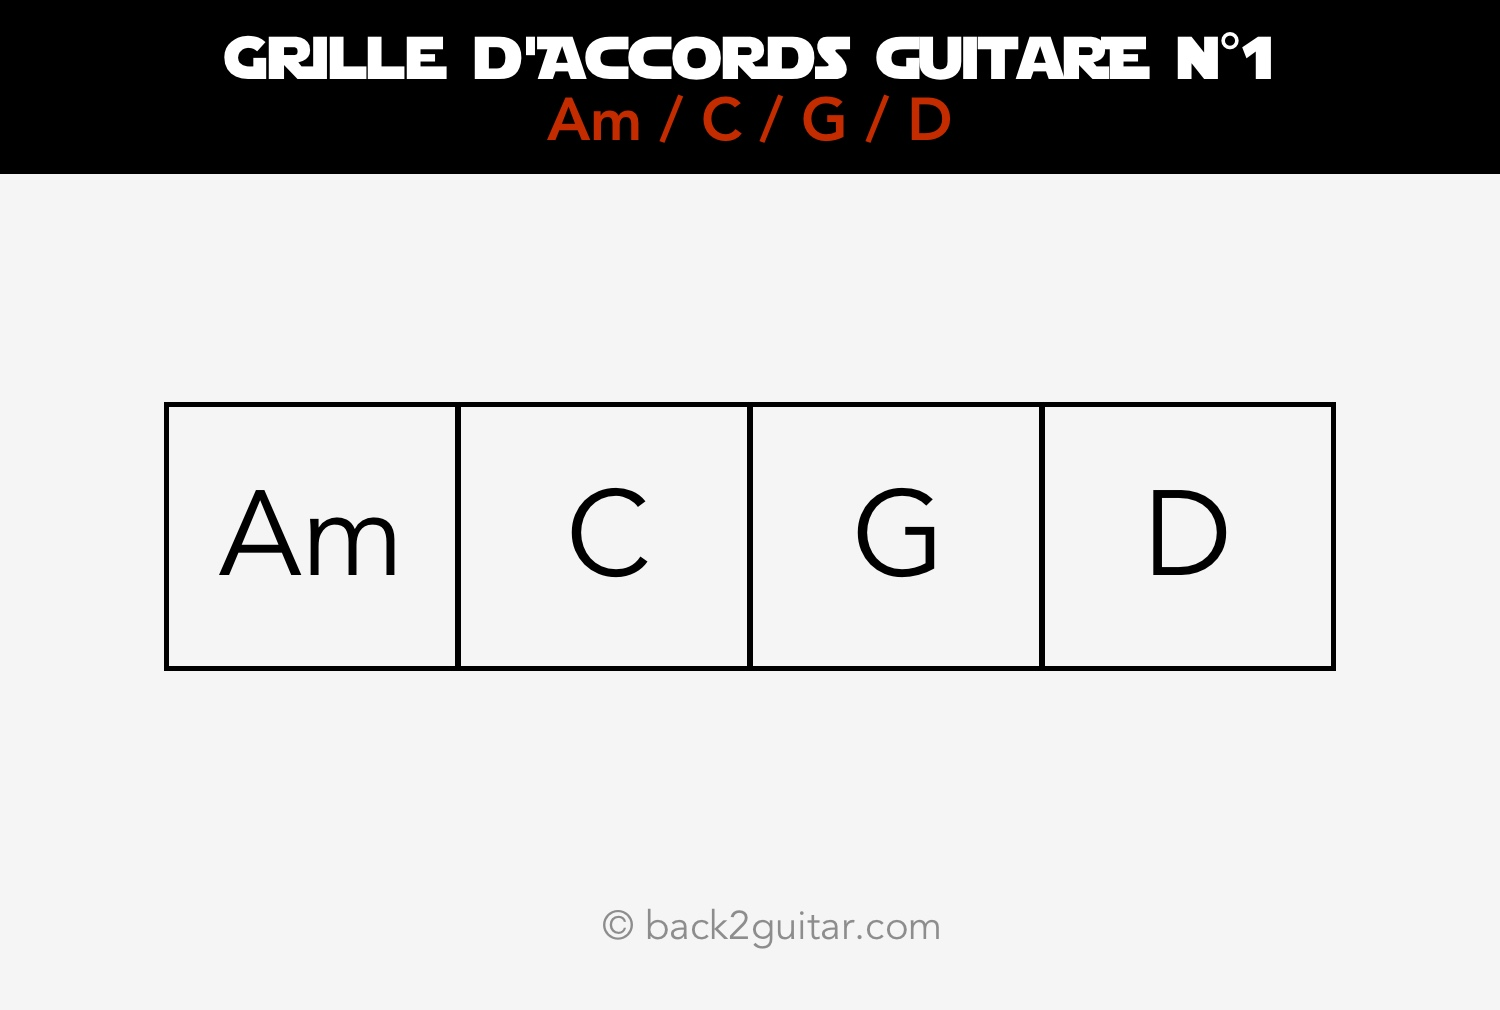 grille accords guitare 1 am c g d